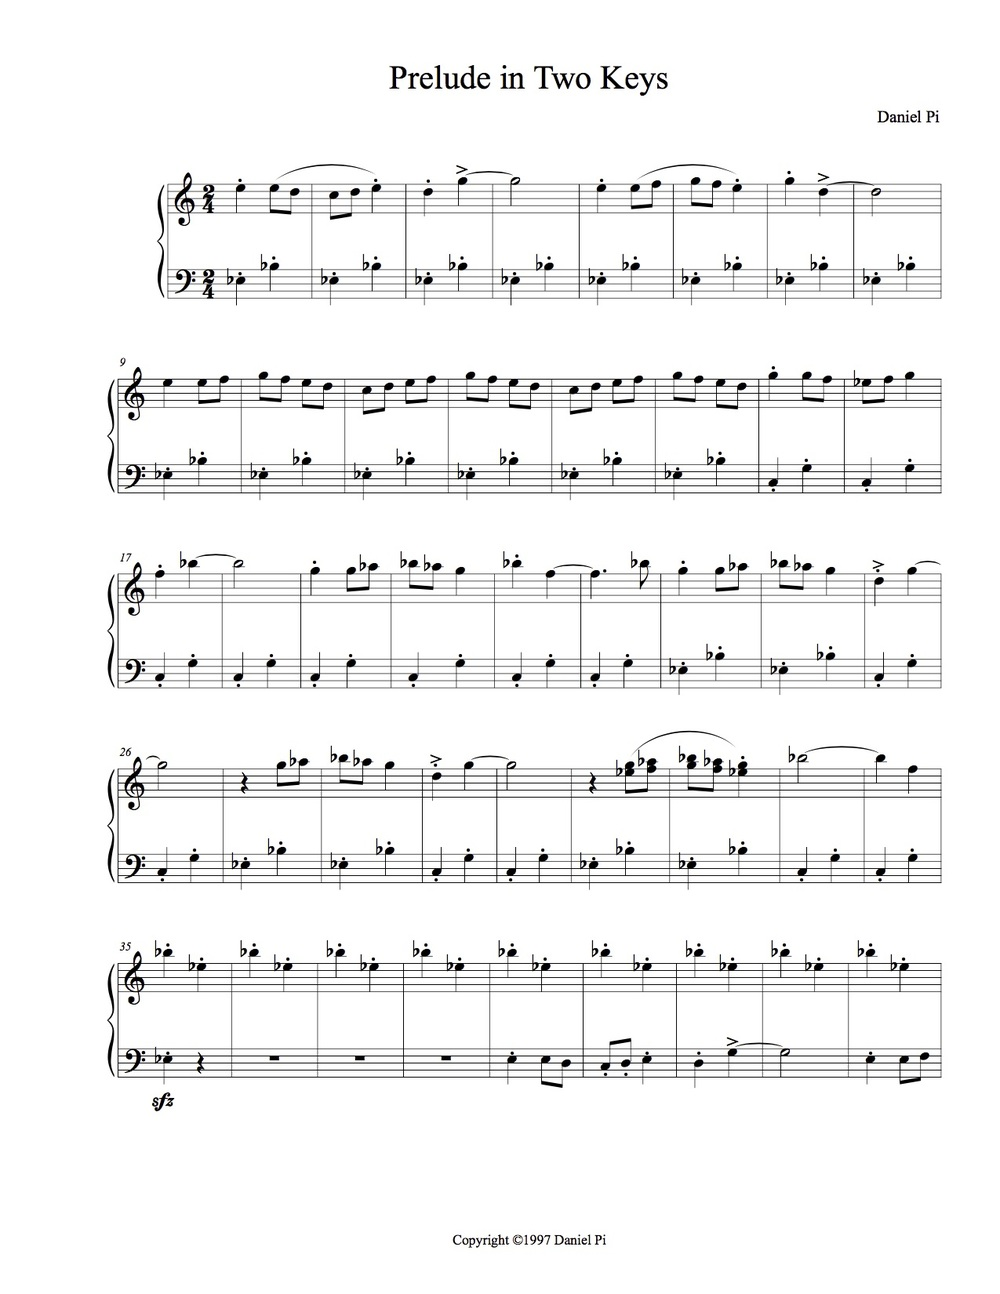 Prelude in Two Keys.jpg